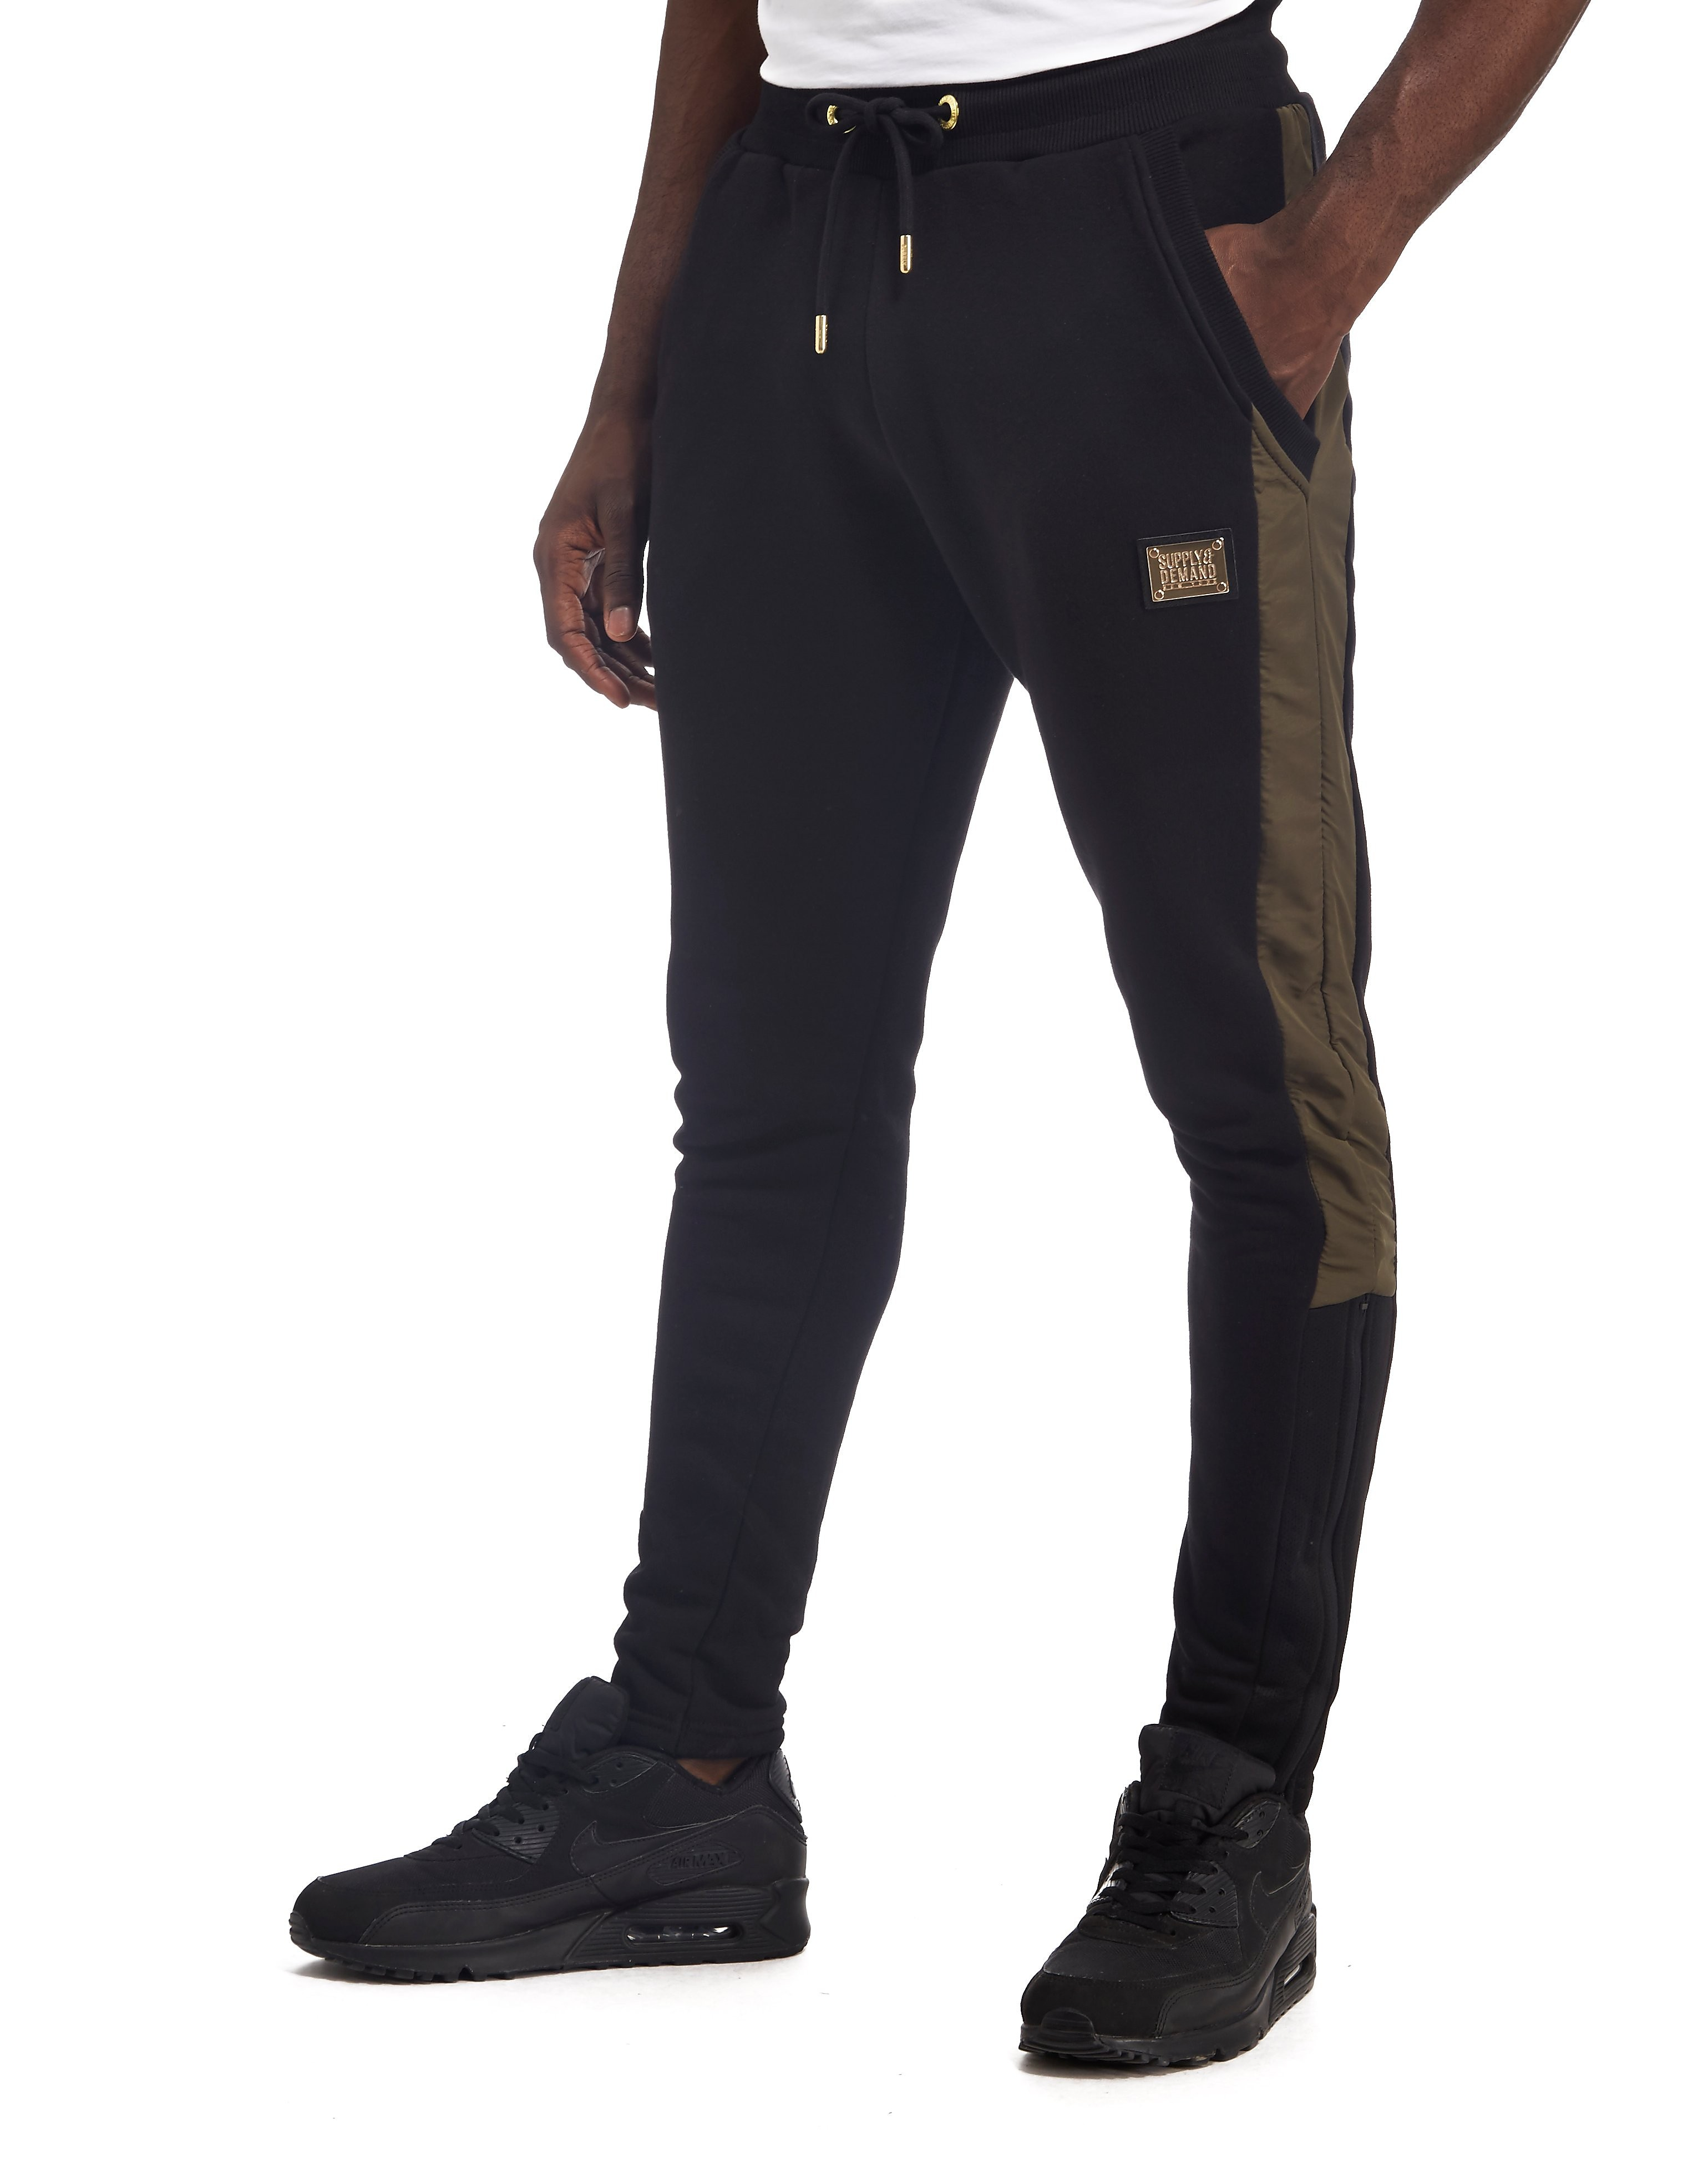 Supply & Demand Refuse Joggers